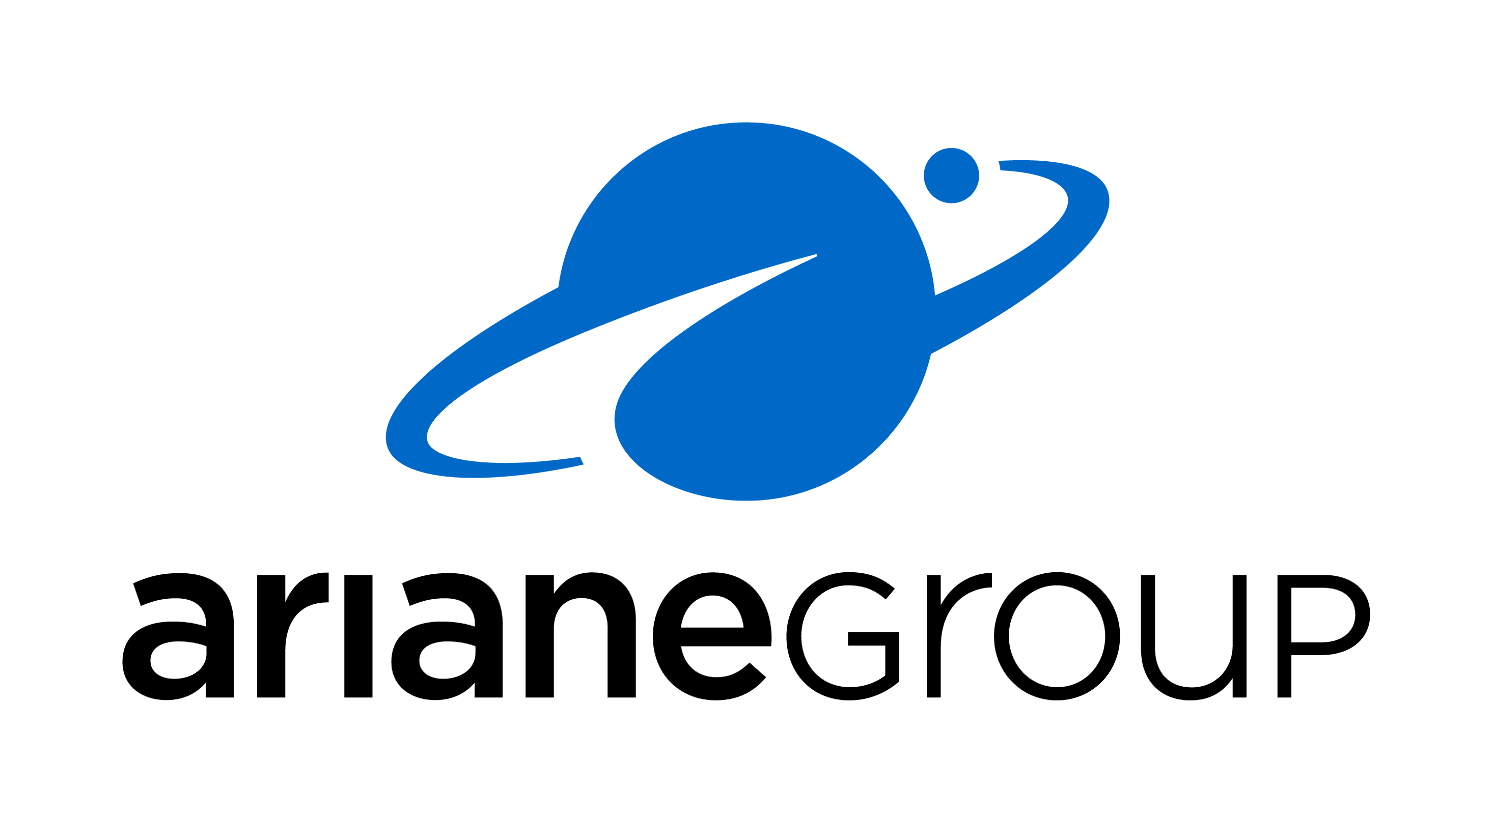 Airbus Safran Launchers becomes ArianeGroup